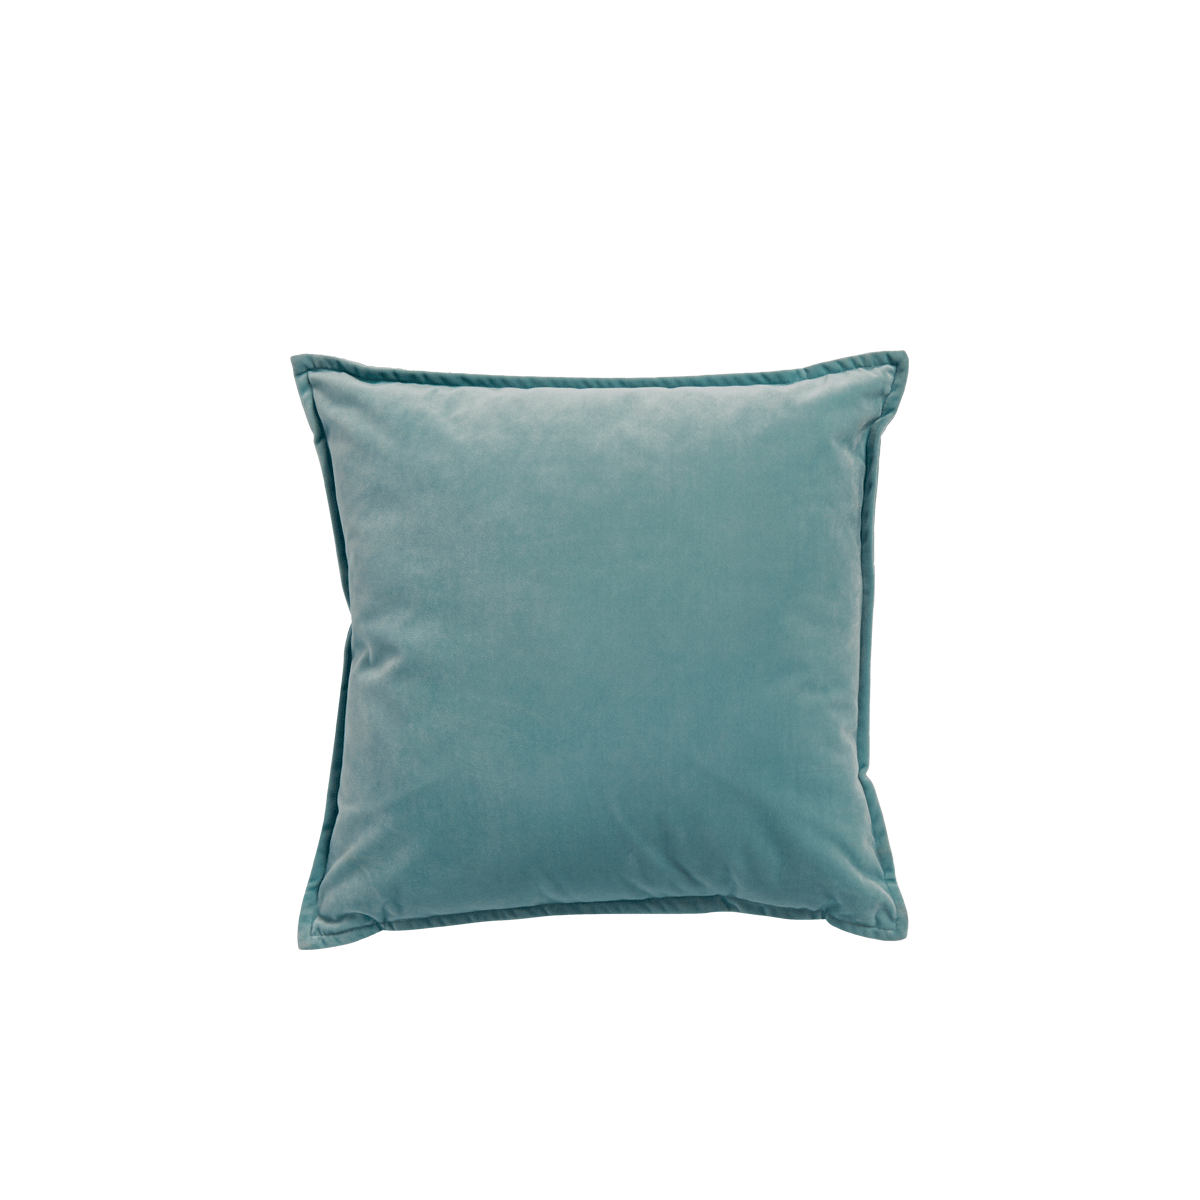 Light Blue Velvet Cushion Hire Furniture And Tableware Hire From Options Greathire London